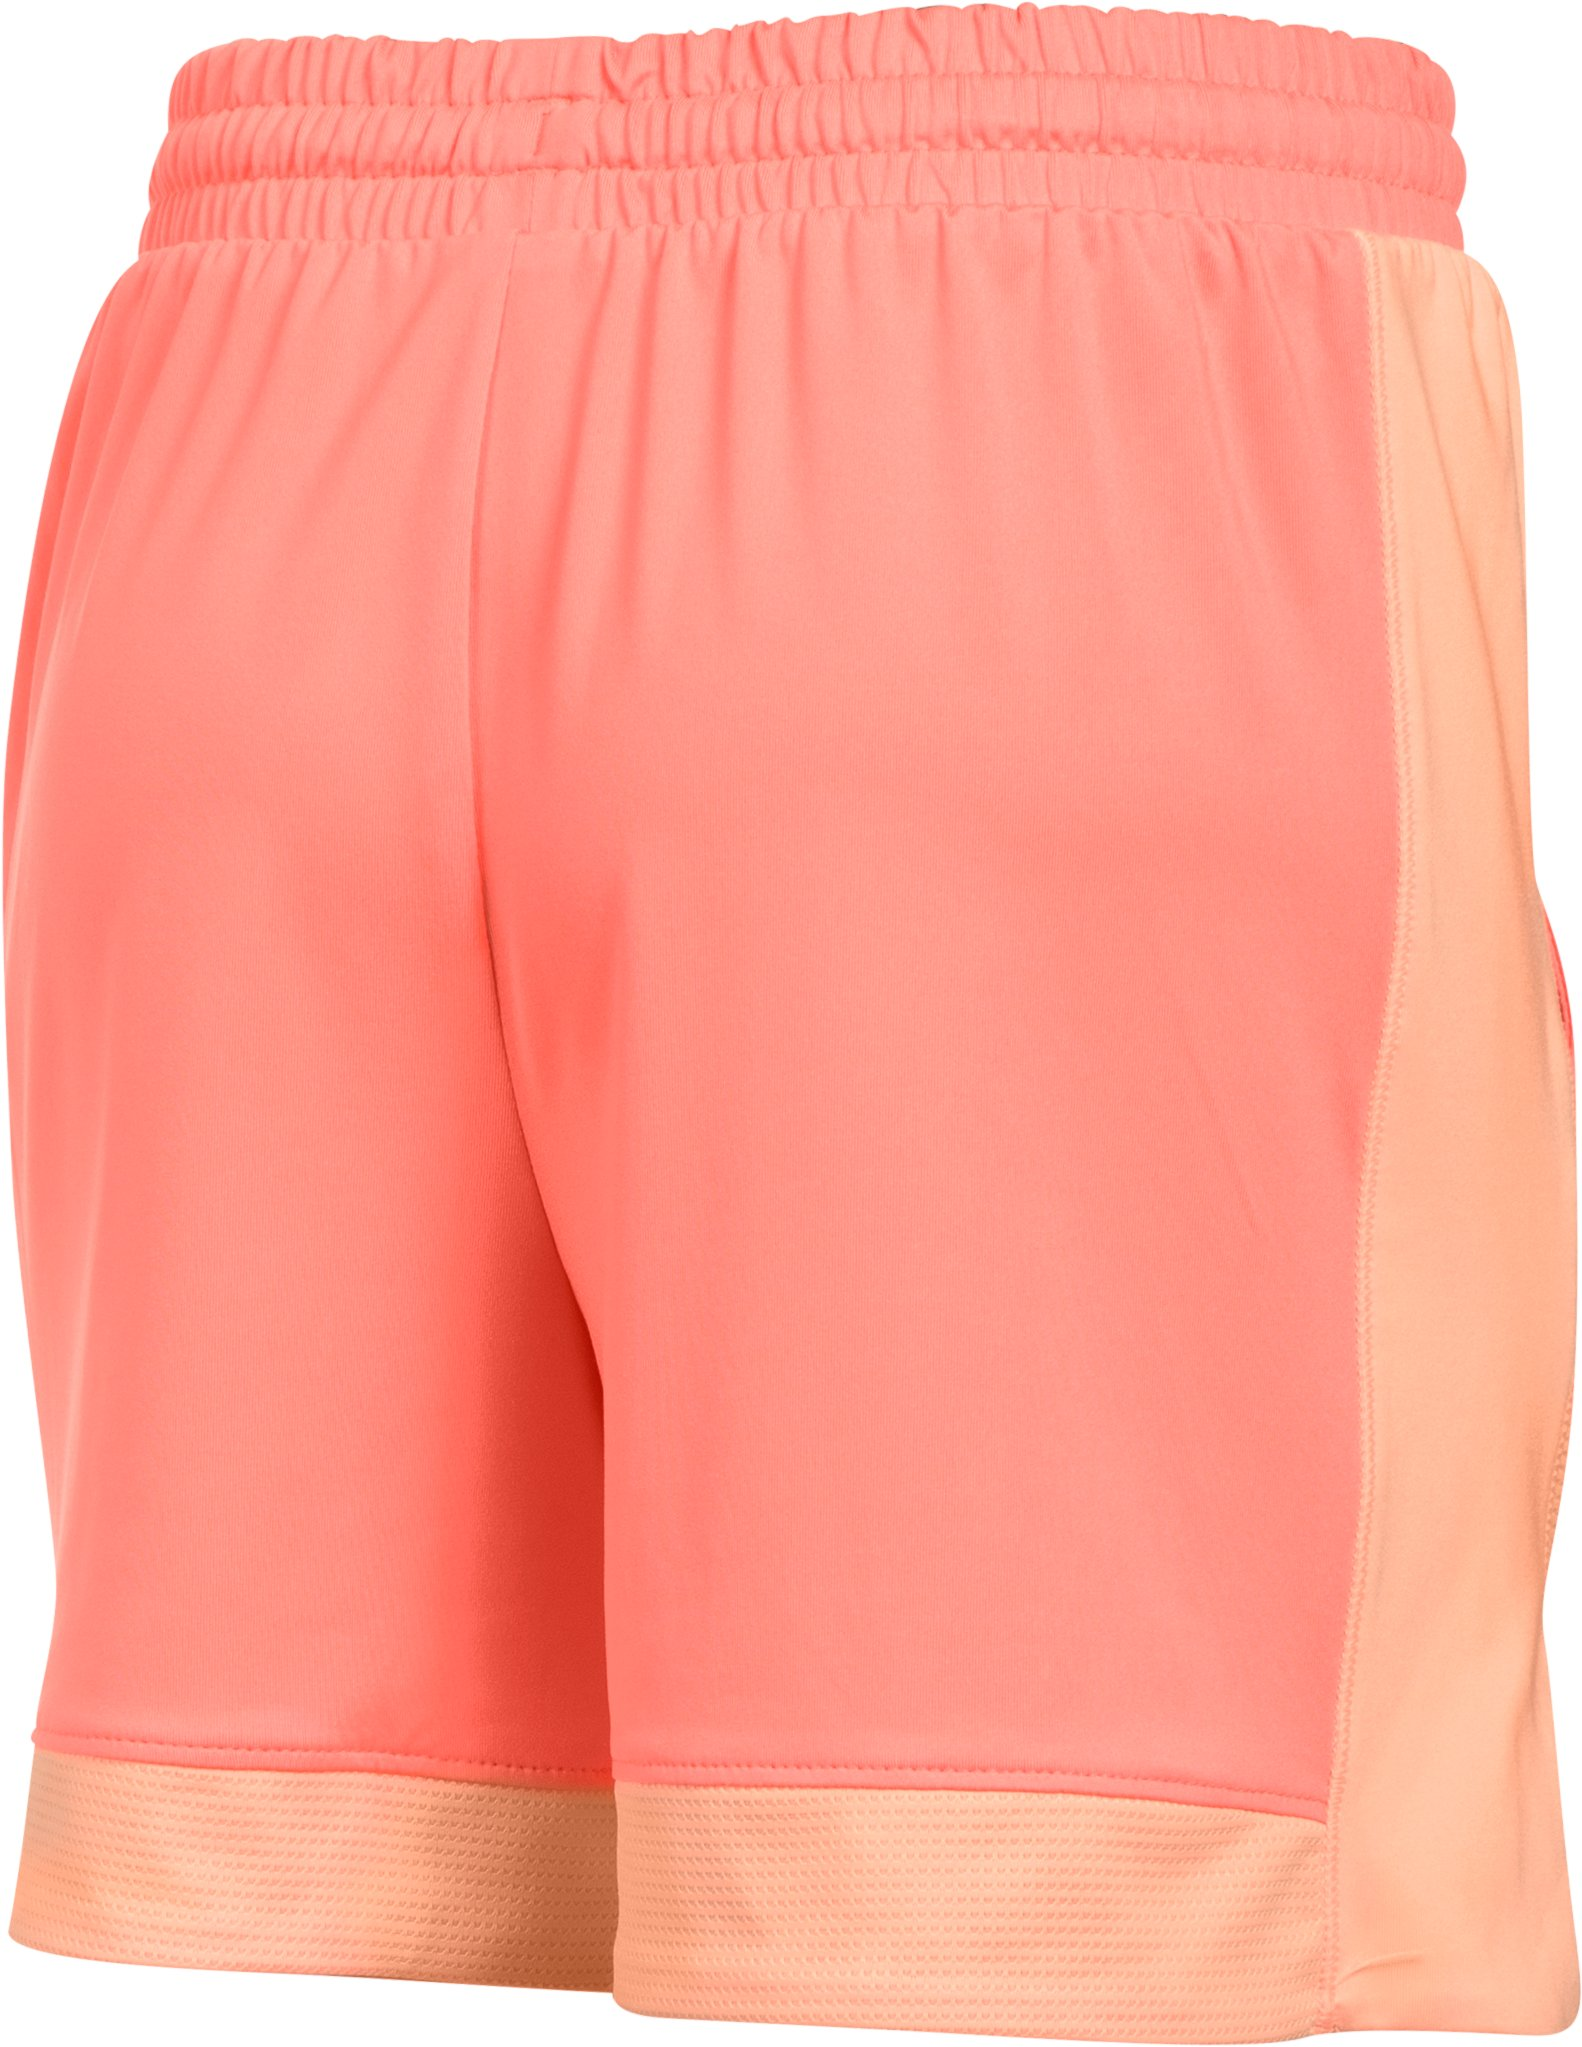 Girls' Armour Sports Shorts, LONDON ORANGE,